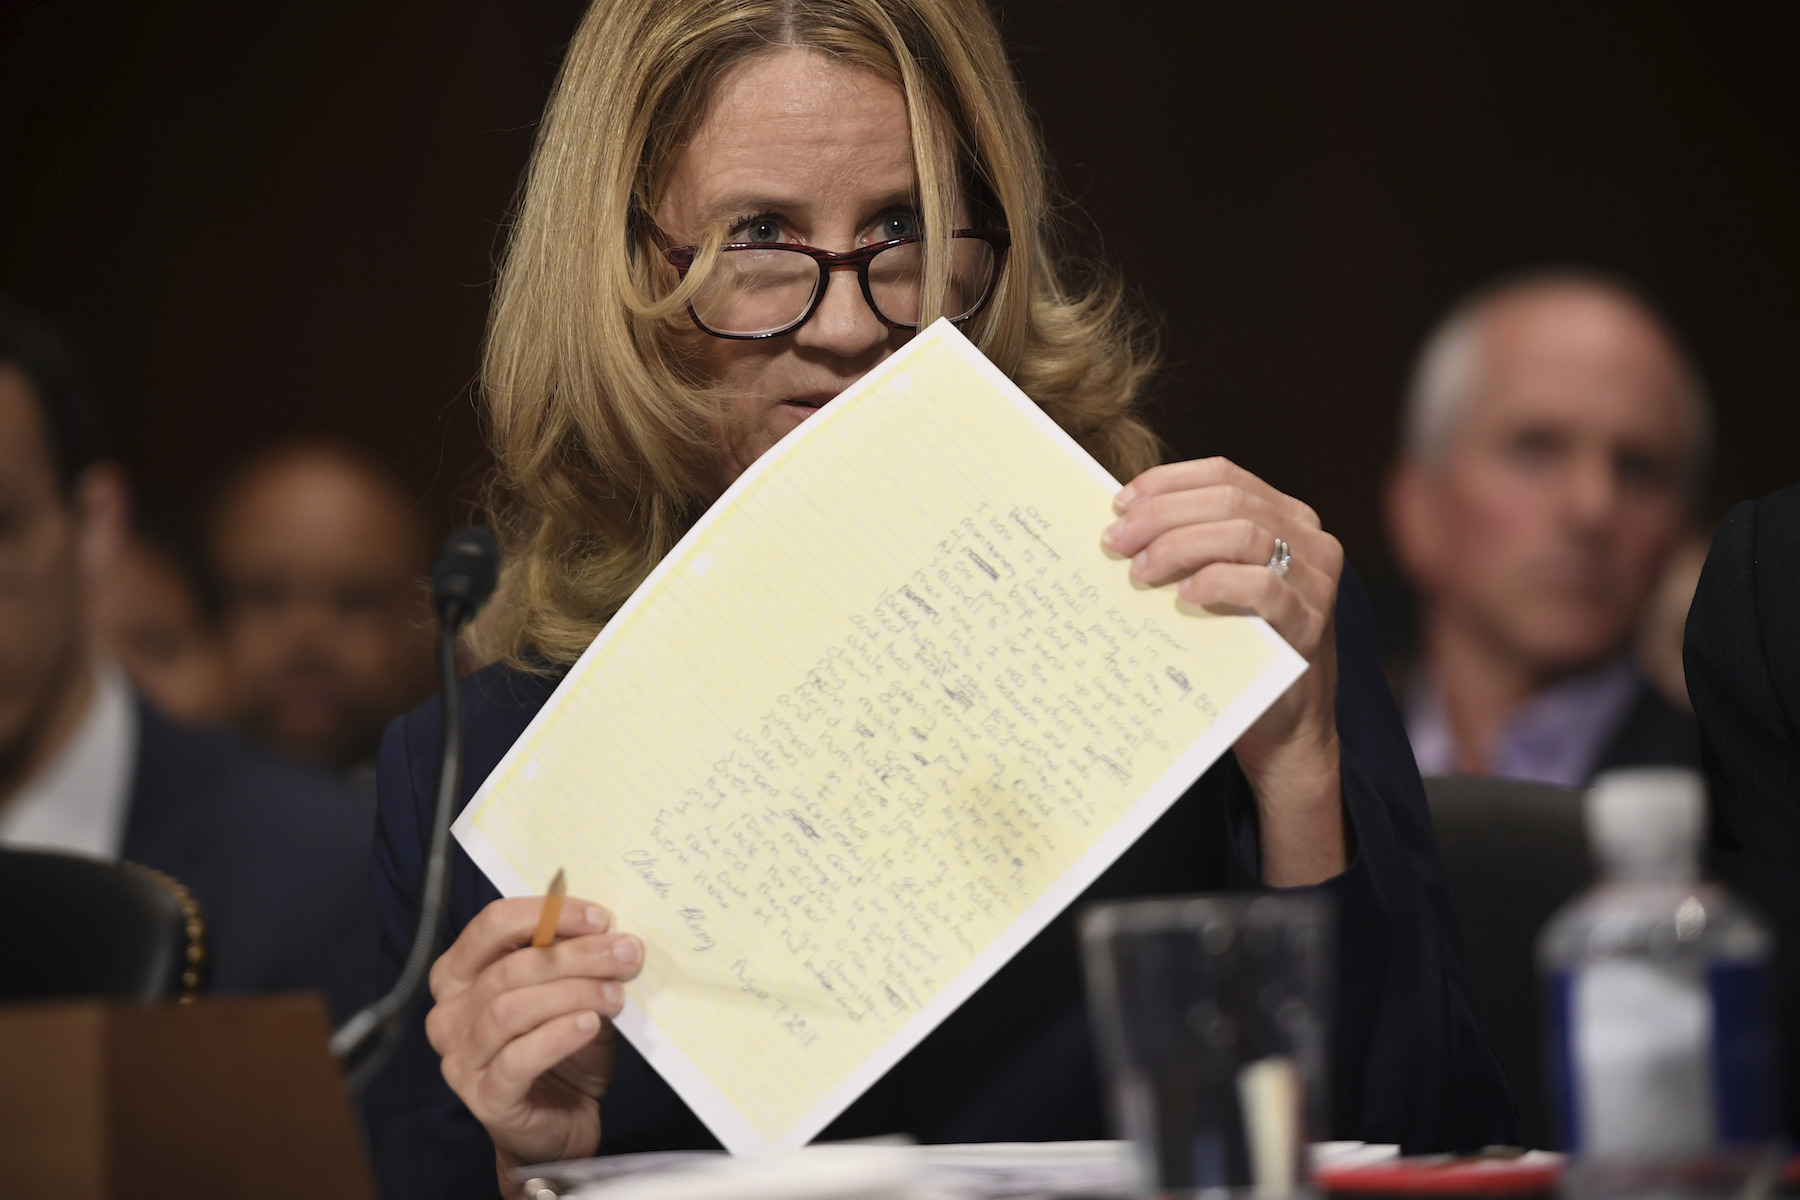 "<div class=""meta image-caption""><div class=""origin-logo origin-image ap""><span>AP</span></div><span class=""caption-text"">Christine Blasey Ford testifies to the Senate Judiciary Committee on Capitol Hill in Washington, Thursday, Sept. 27, 2018. (Saul Loeb/Pool Photo via AP)</span></div>"